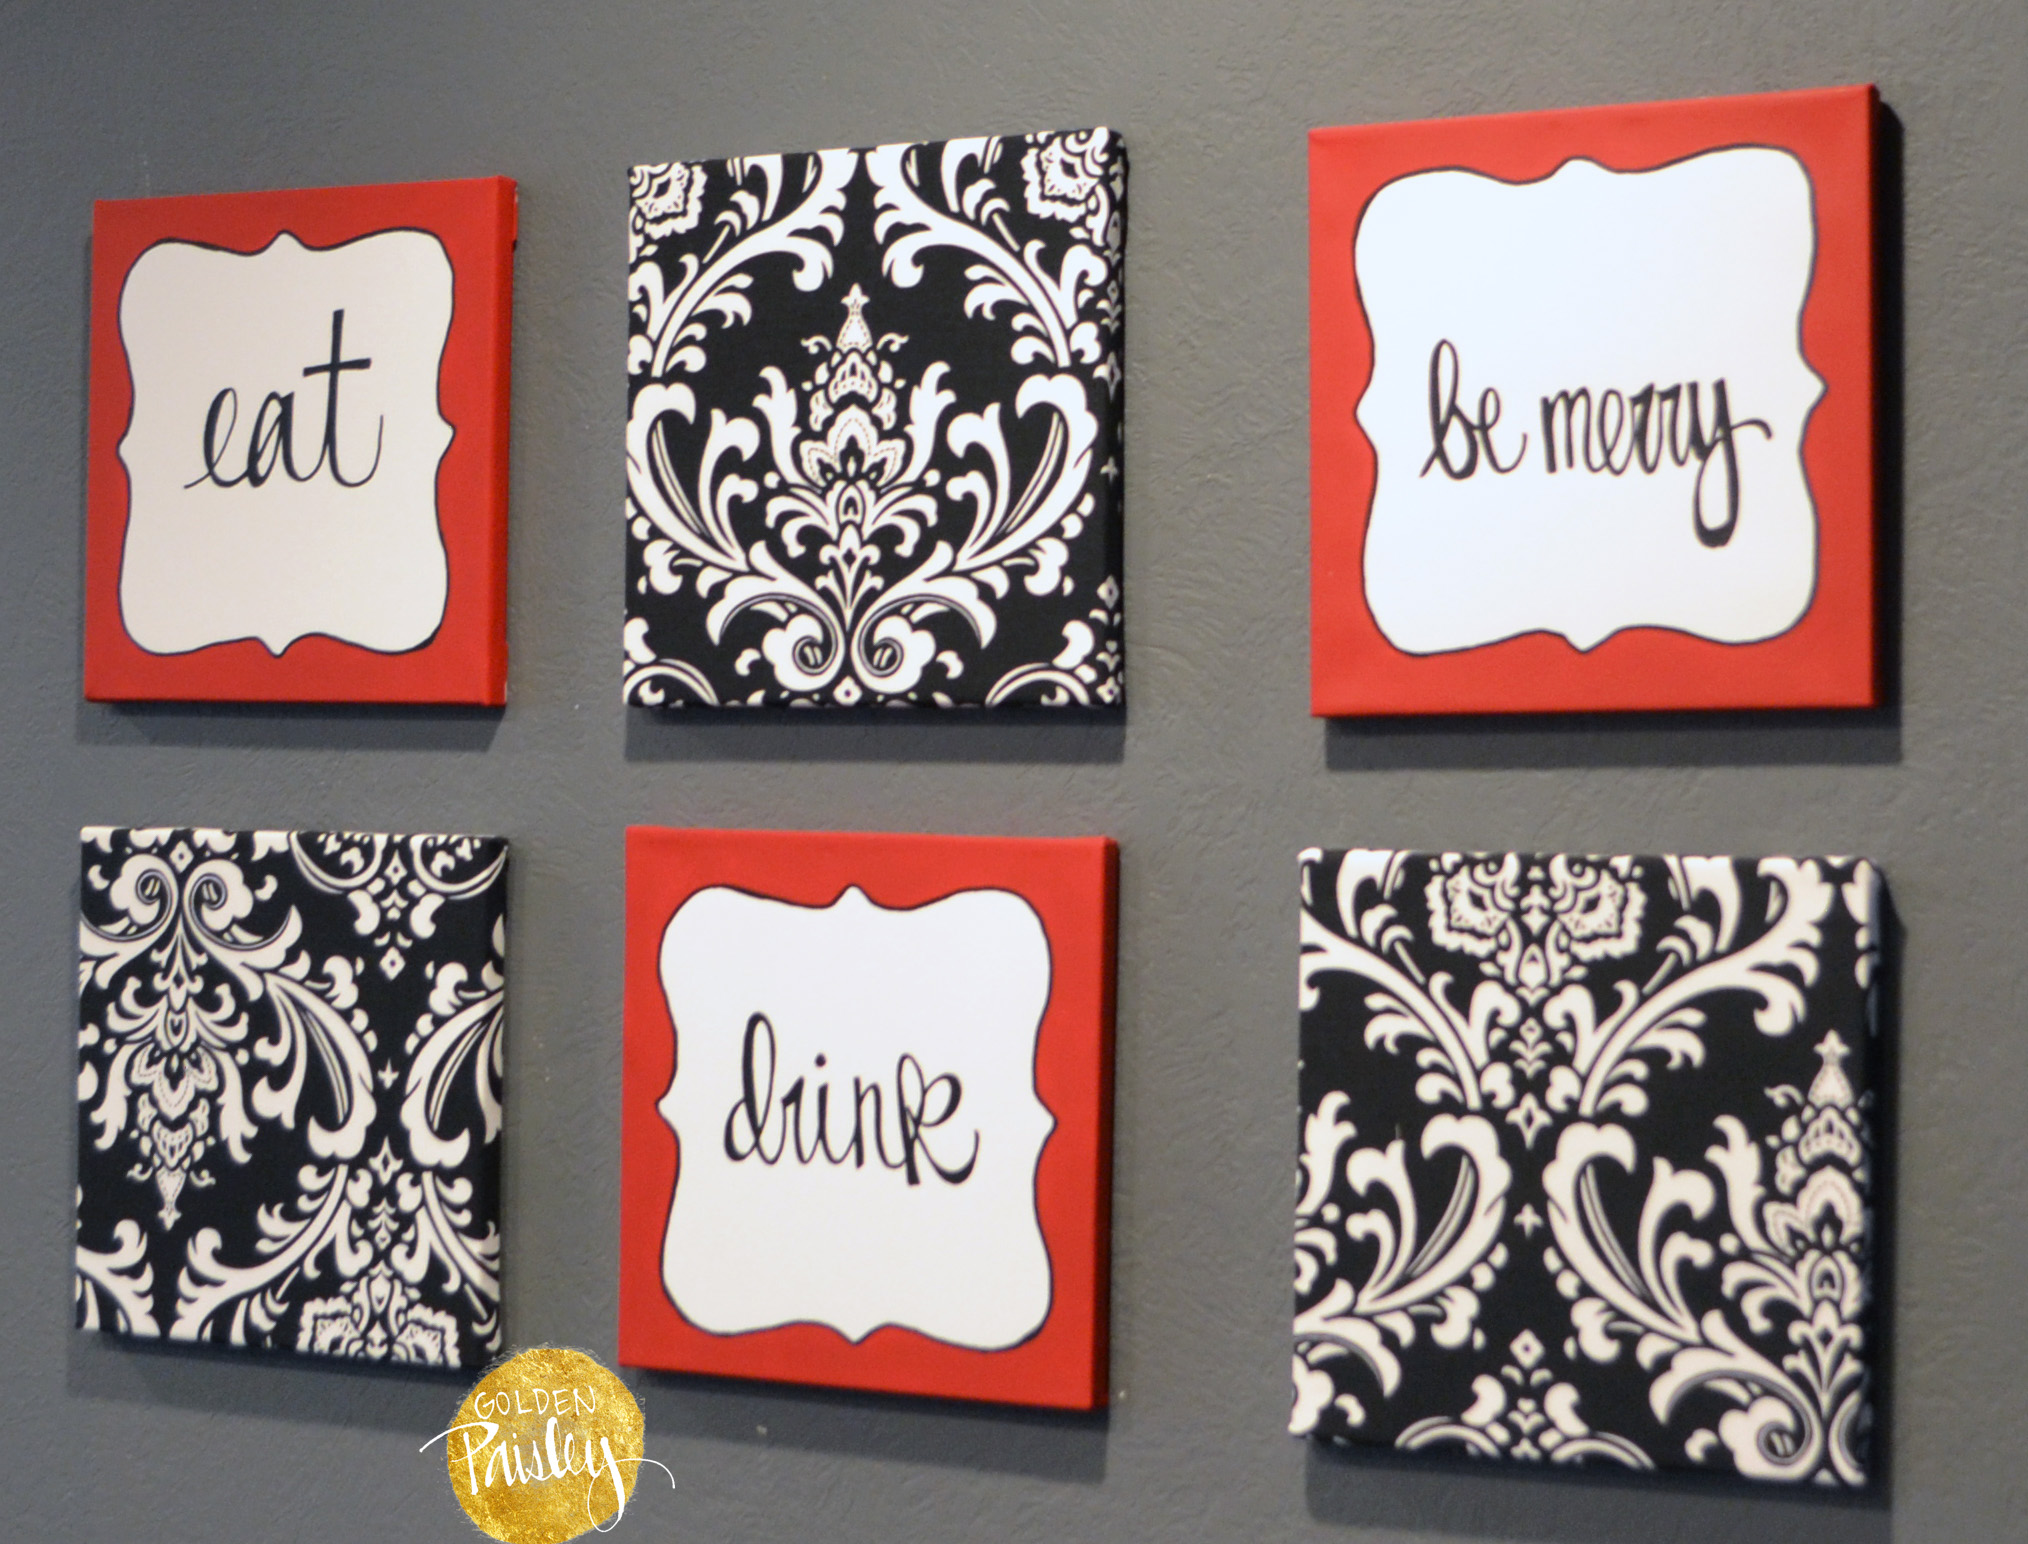 White Kitchen Wall Decor : Red and black damask eat drink be merry chef wall decor set